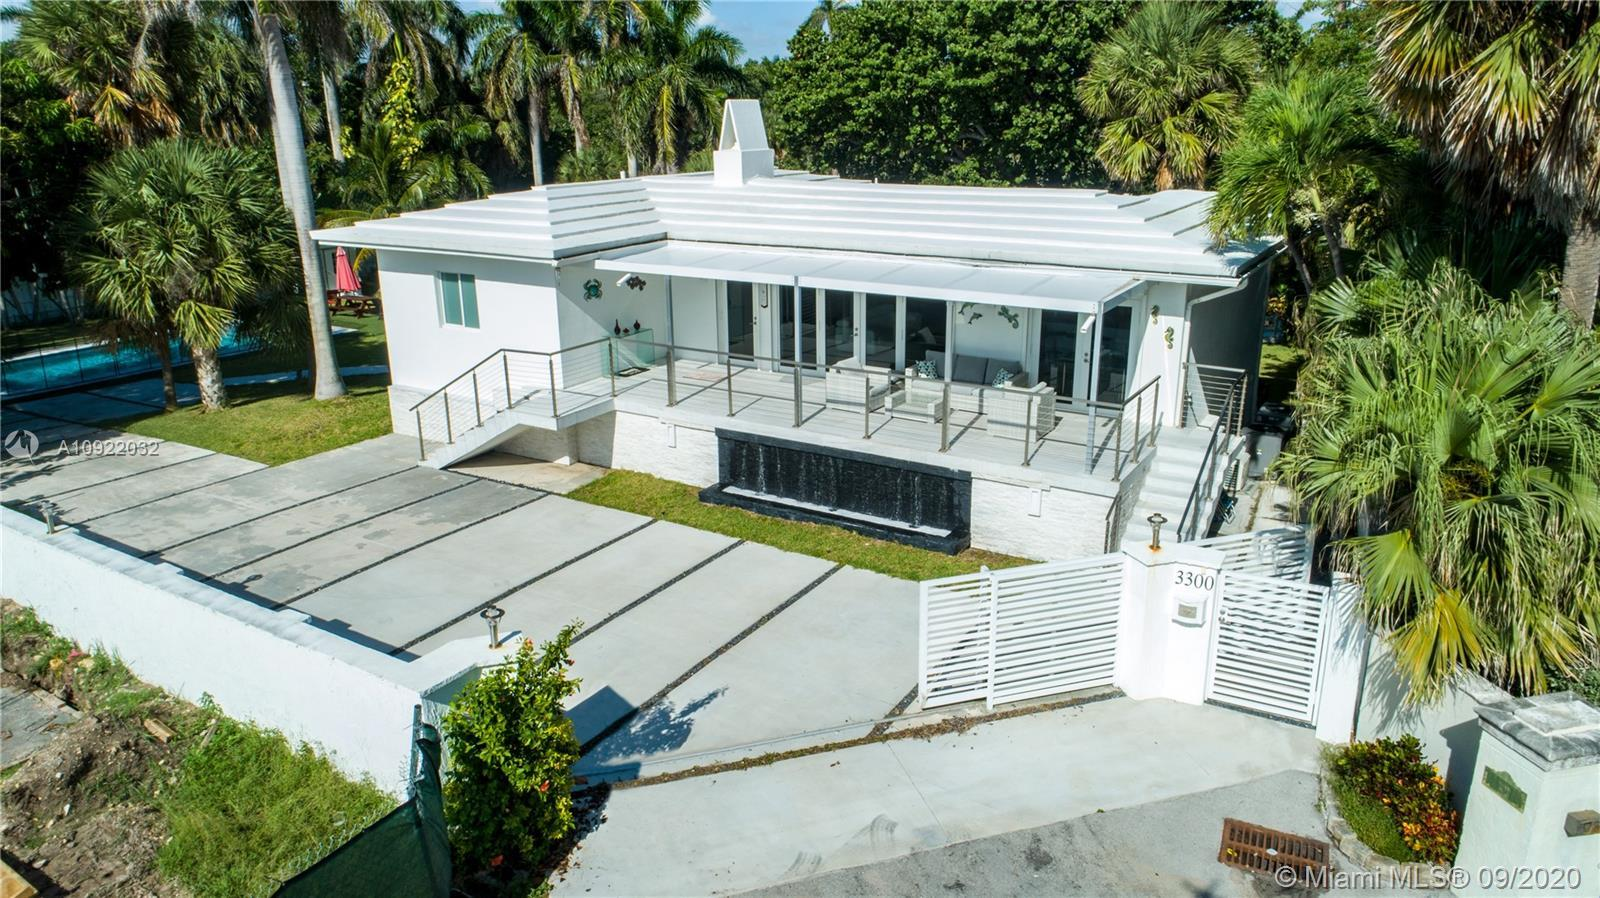 Architects, Investors and Agents! Beach House On A Double 200 Steps From The Ocean! Rare Birch Park